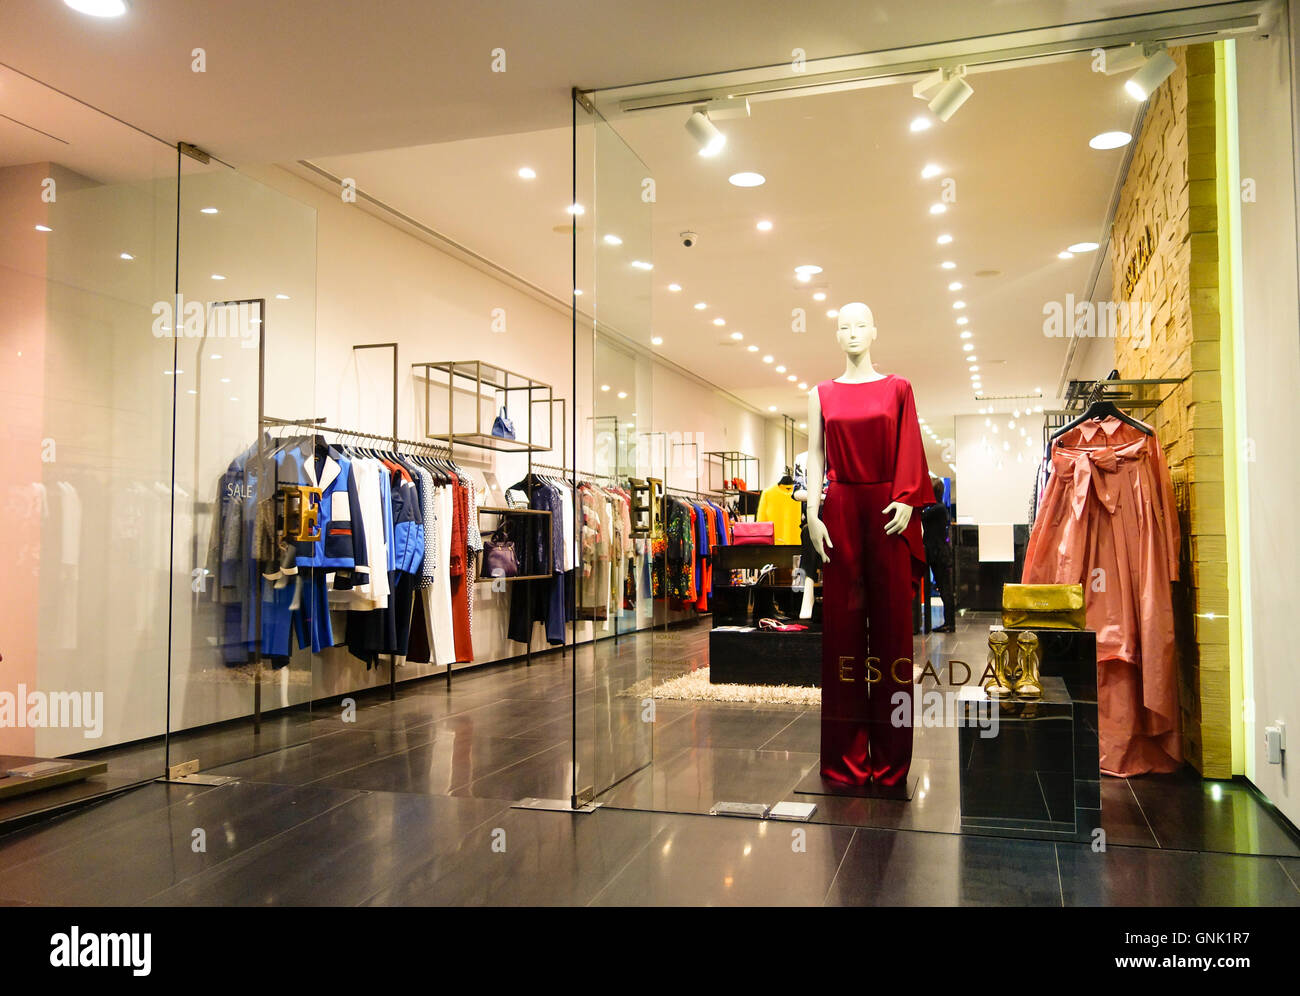 German luxury women s designer clothing company, shop, Fashion, Escada  facade, Puerto banus, Marbella, Spain. d90e5579170